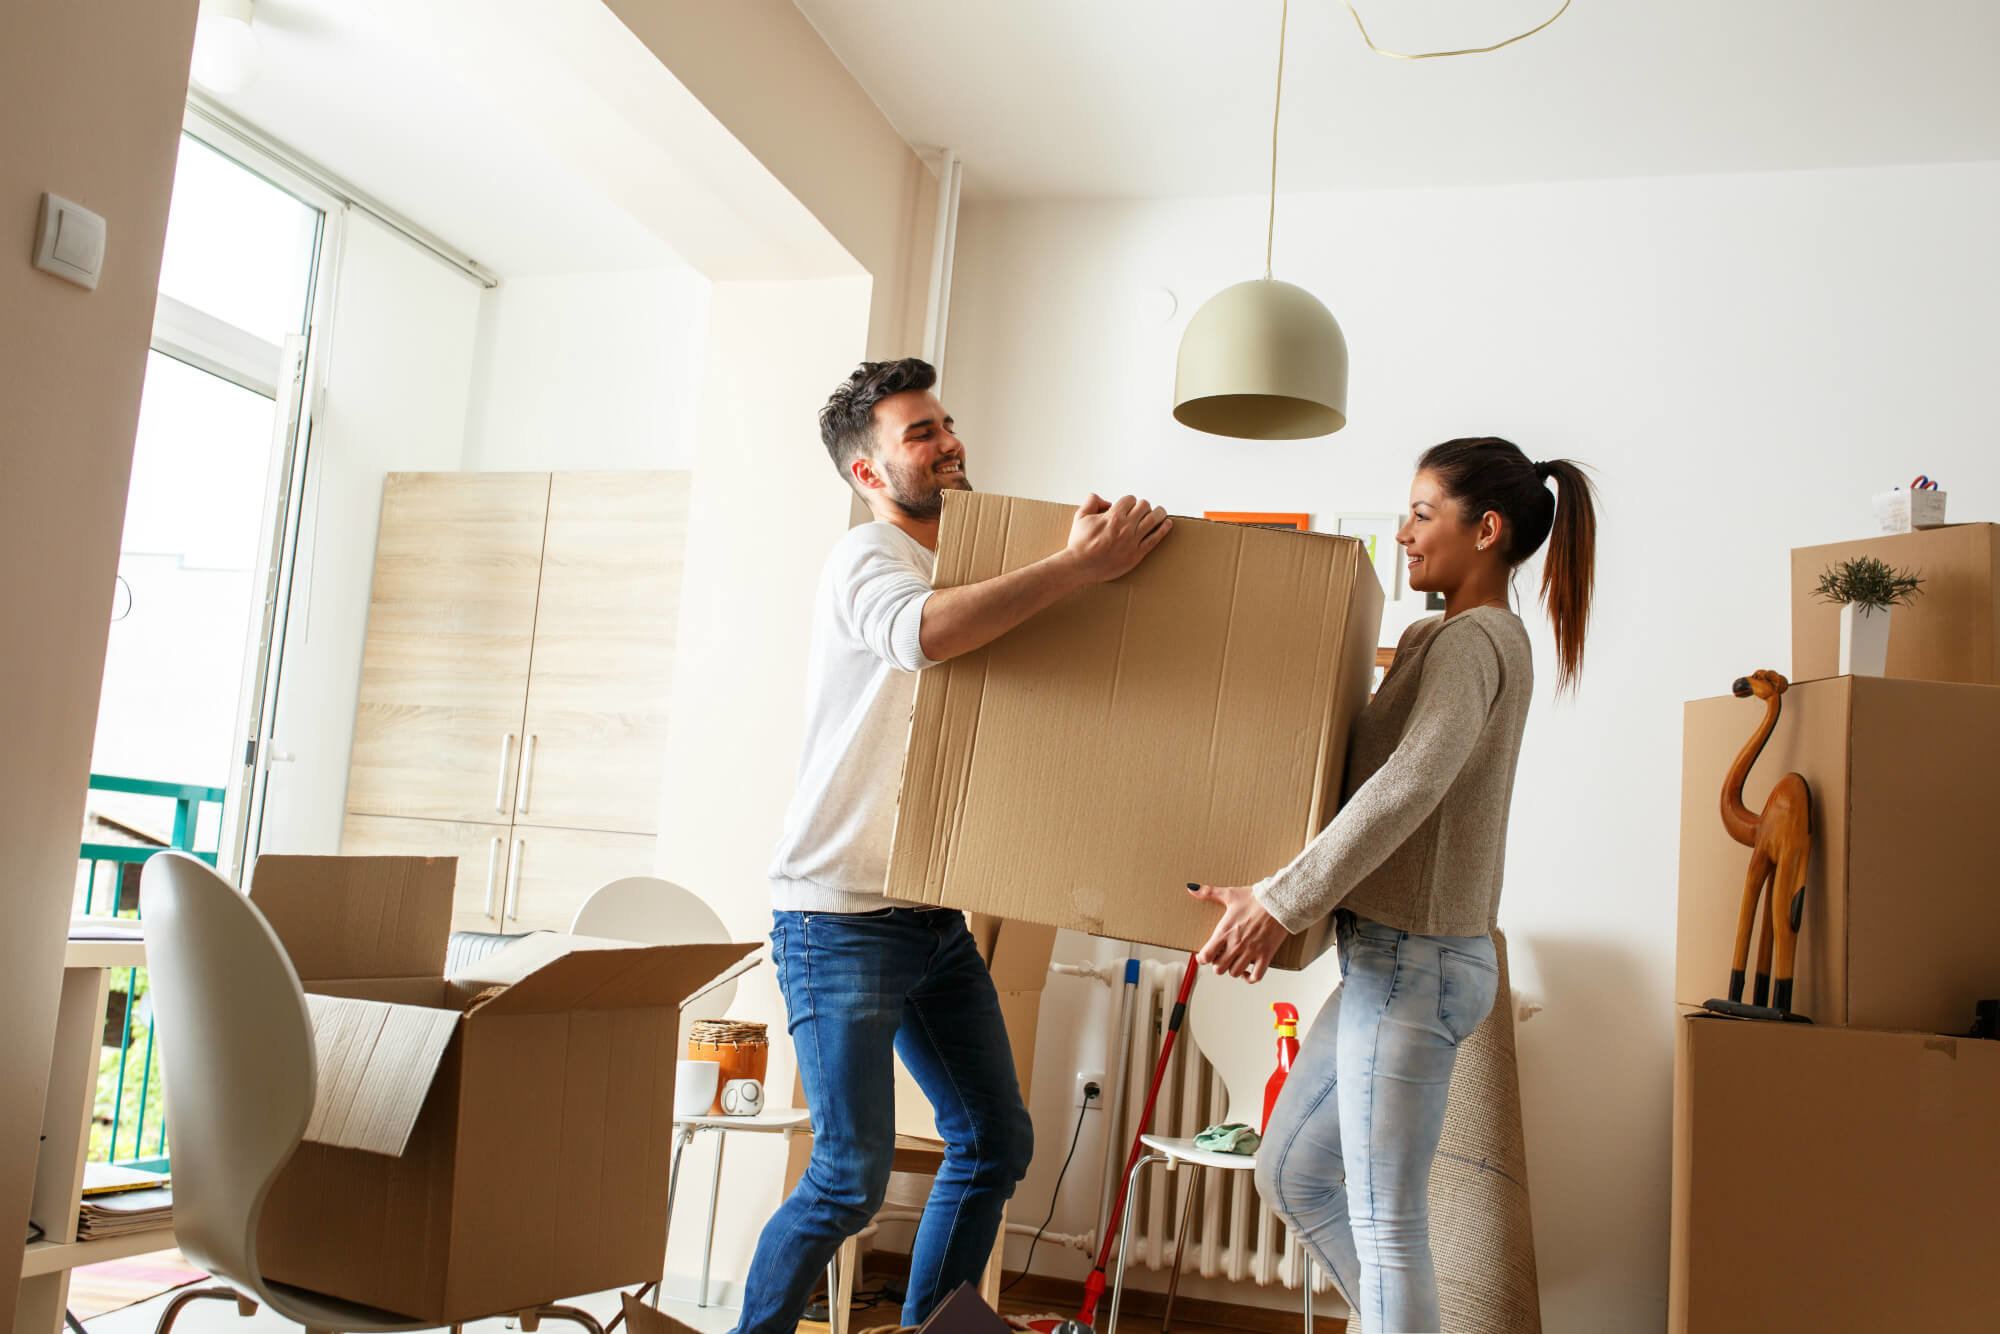 Young couple packing and moving boxes after selling their home